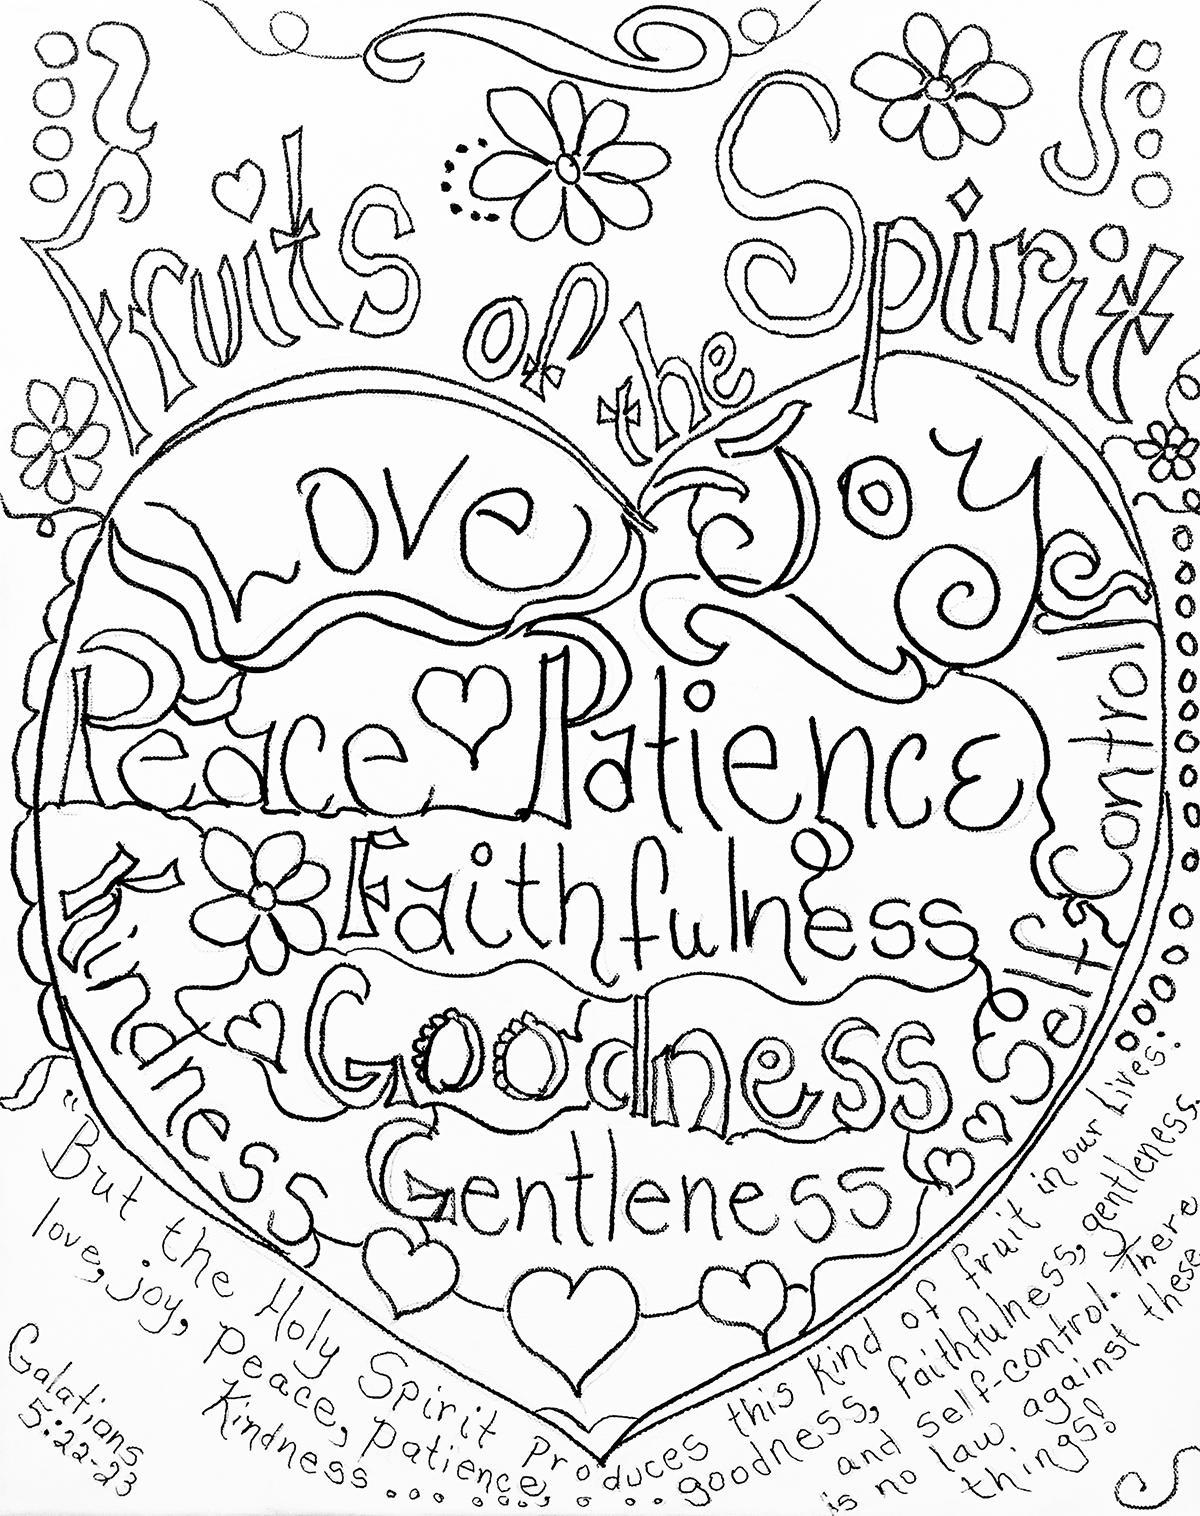 - Fruits Of The Spirit Coloring Page By Carolyn Altman. Galatians 5